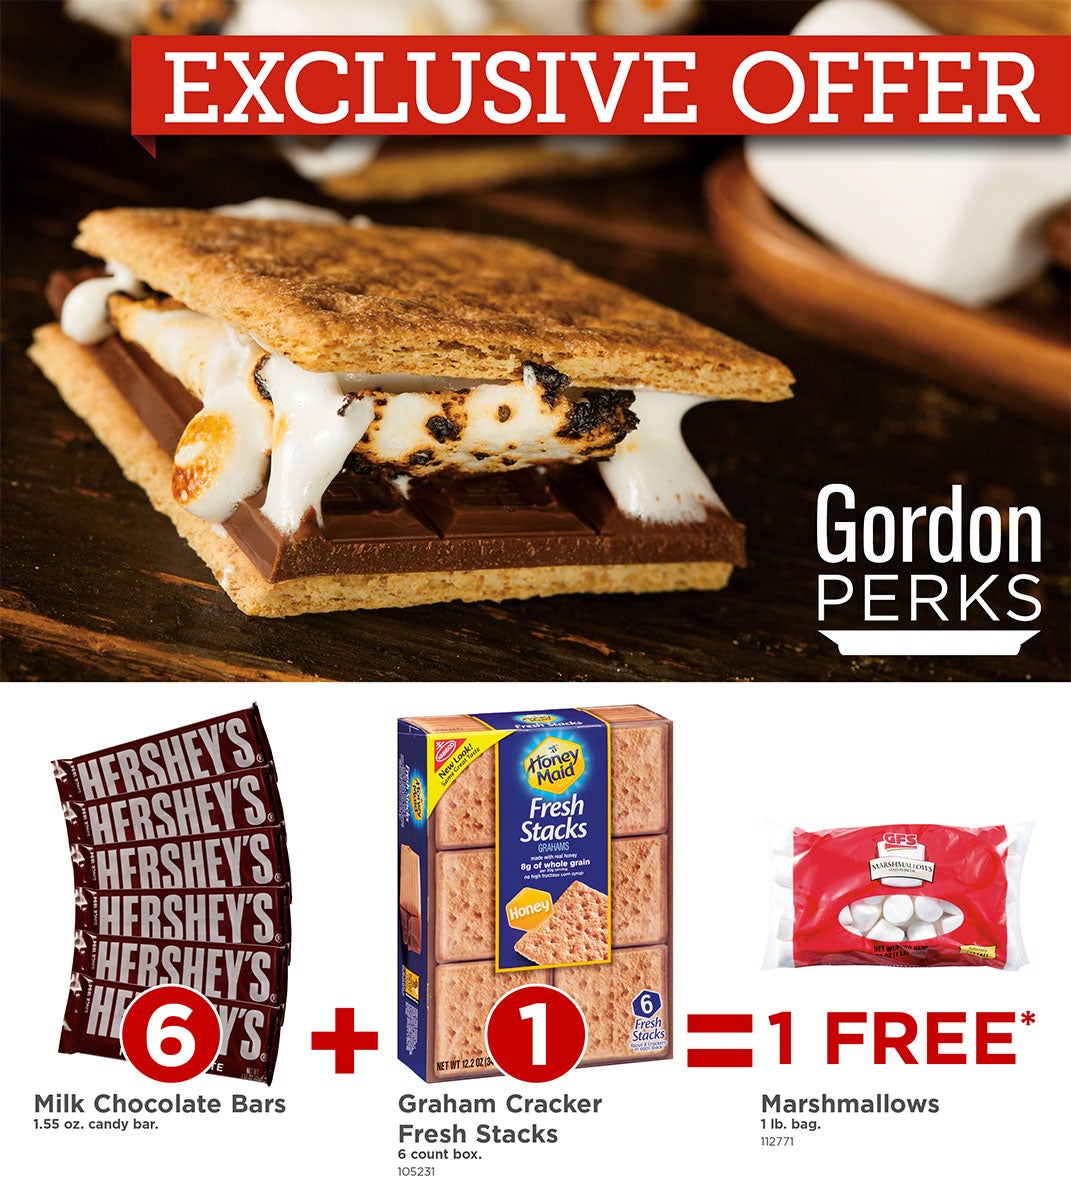 S'mores PERKS Offer